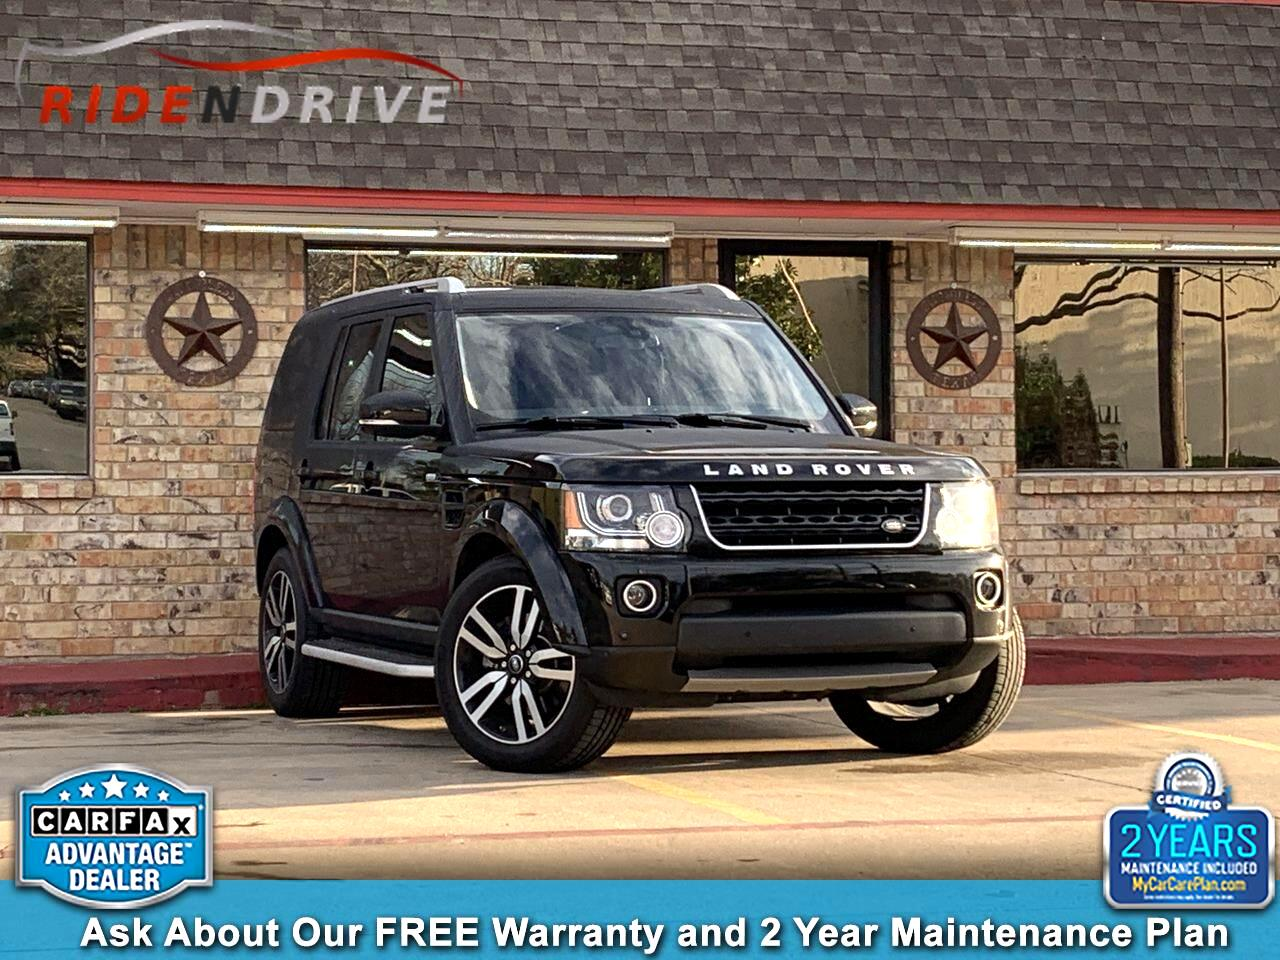 2016 Land Rover LR4 4WD 4dr HSE LUX Landmark Edition